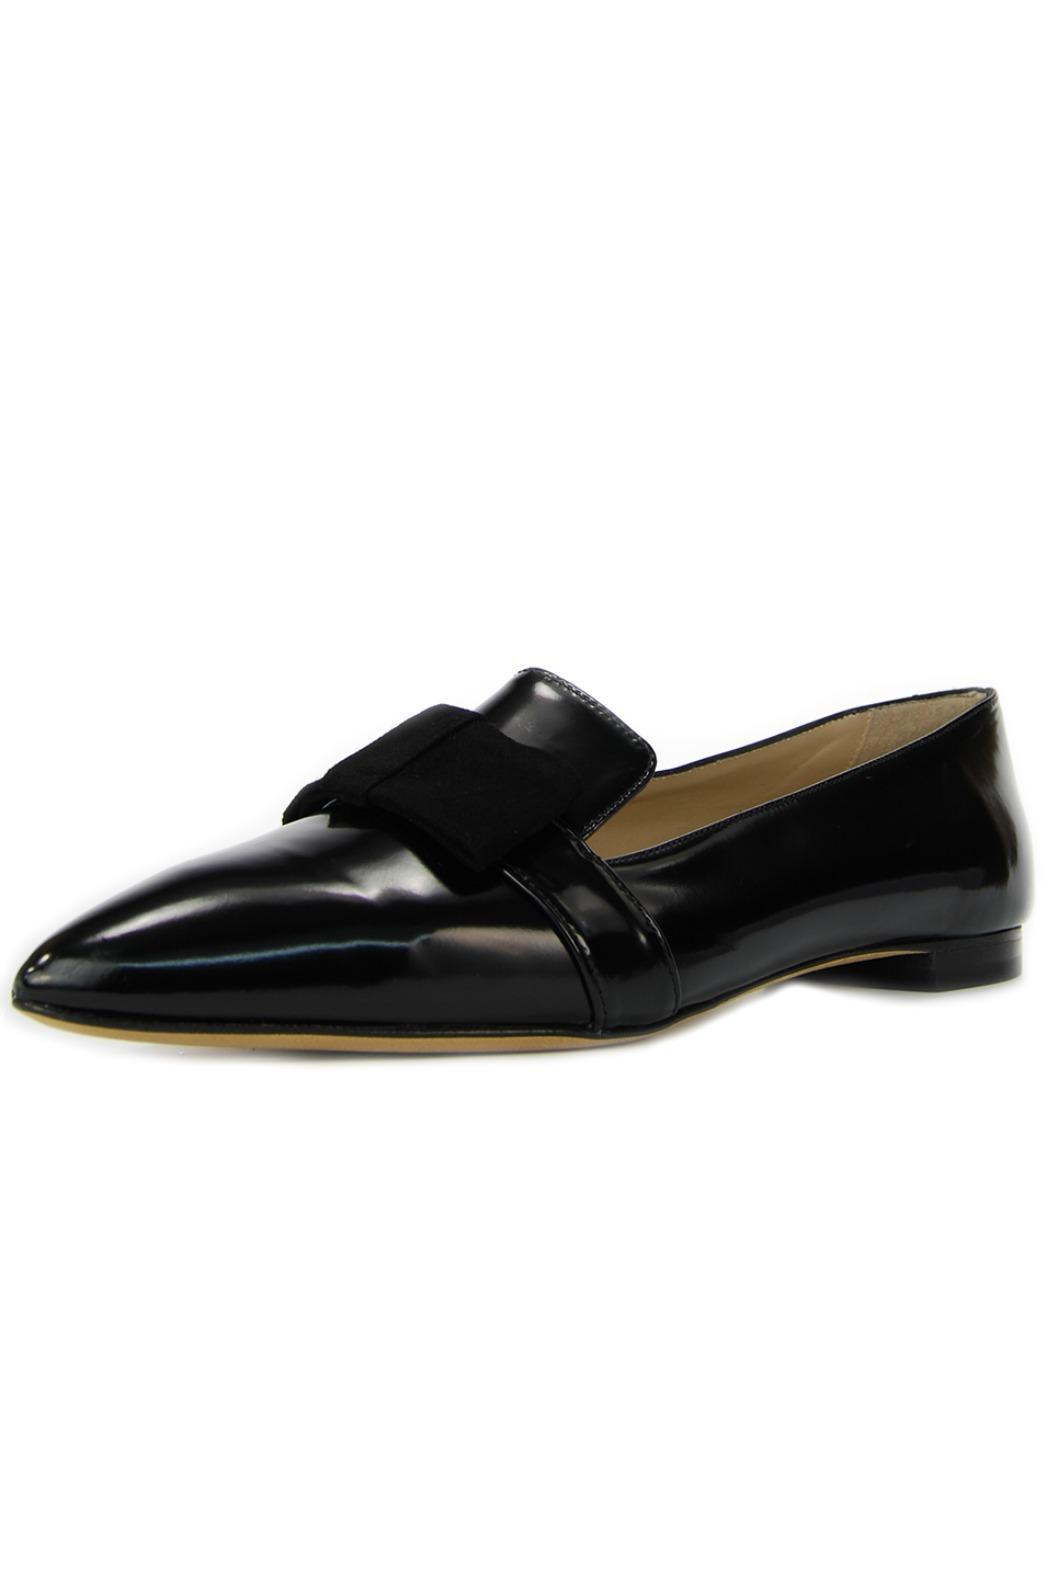 Cenedella  Black Leather Loafer - Main Image